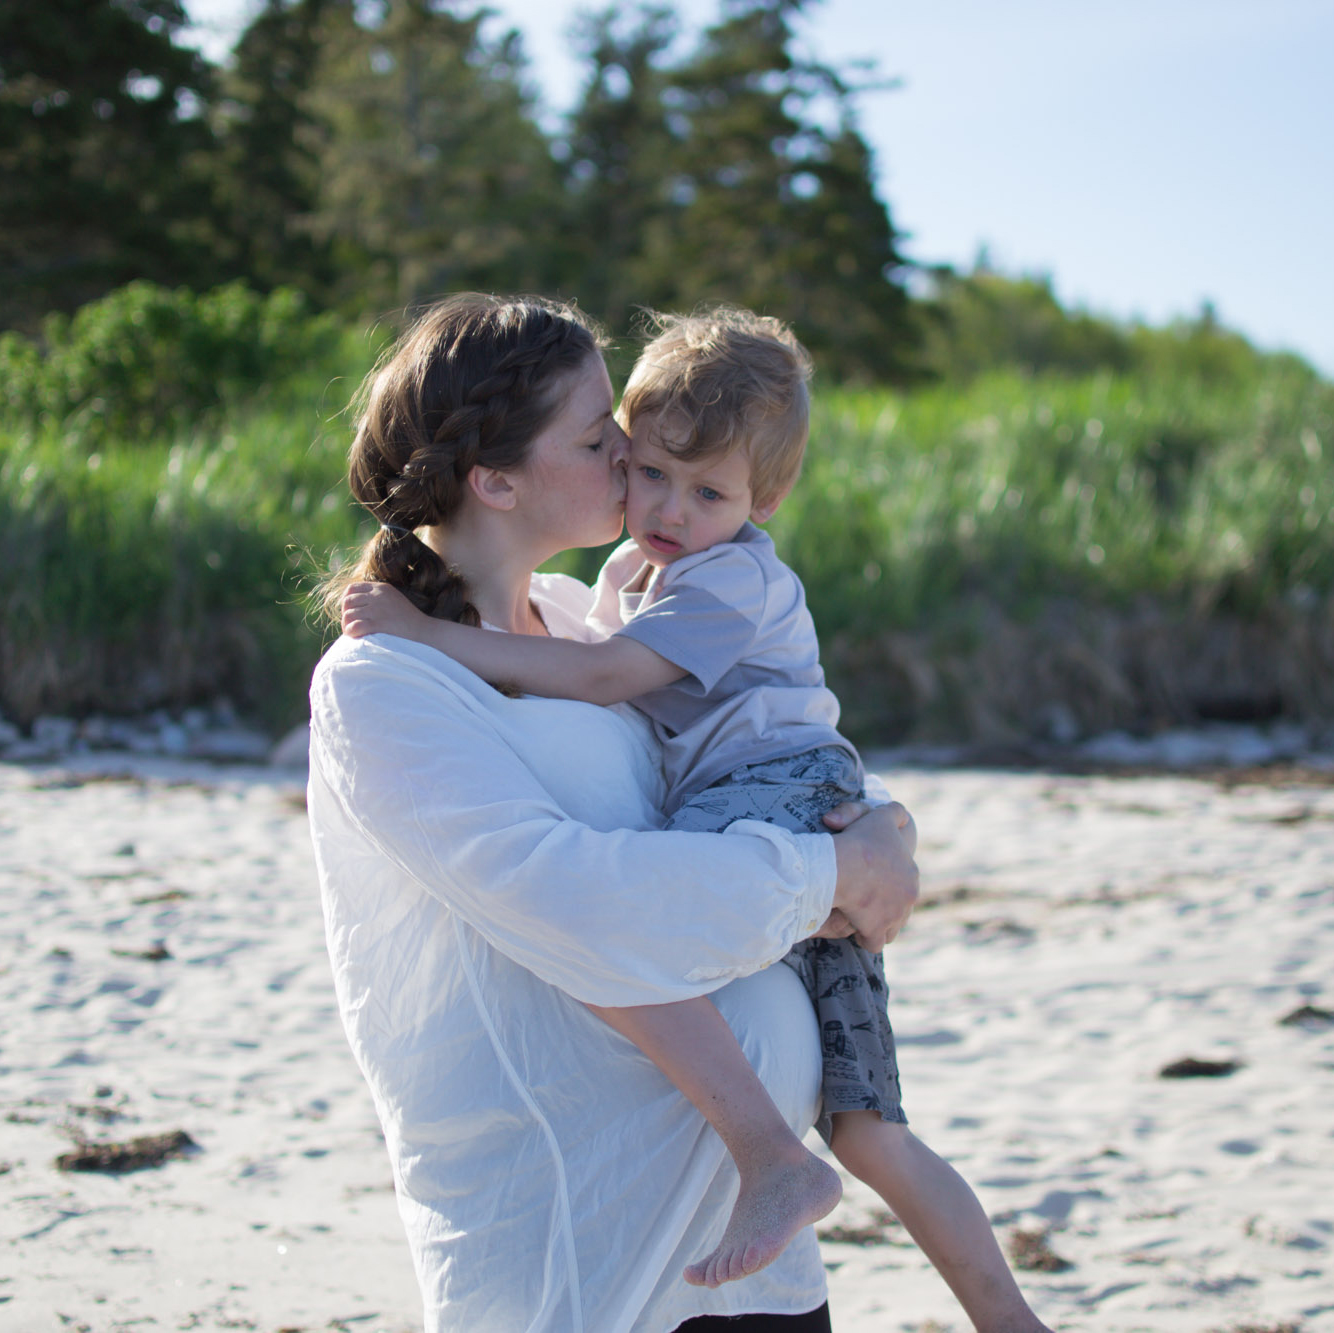 Wild Roesbuds: a 34 week bump date and Family photoshoot on the beach